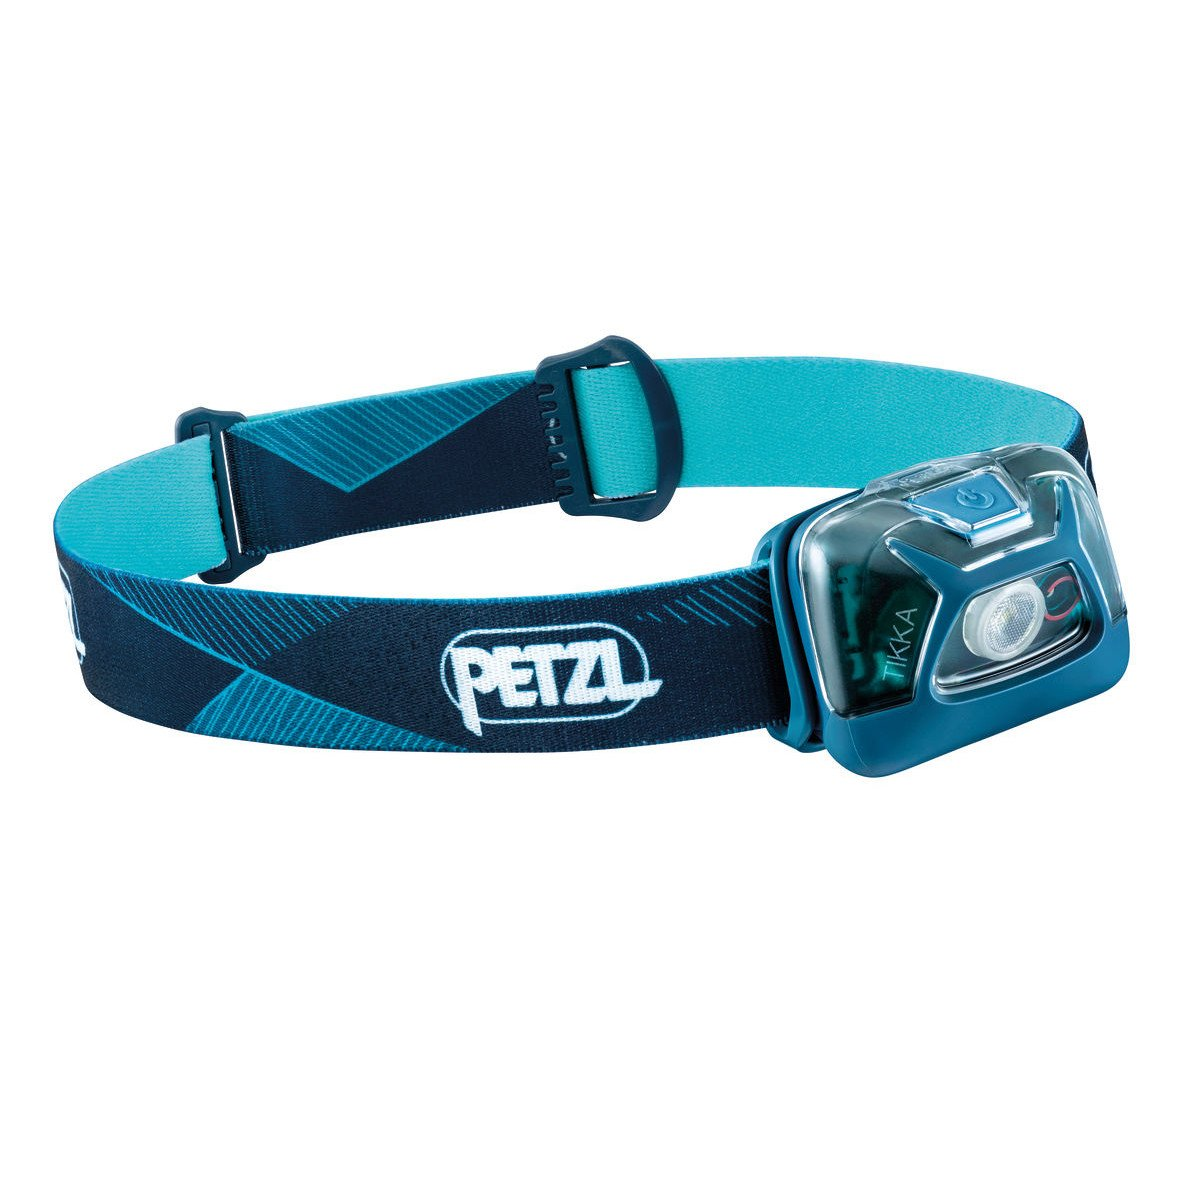 Petzl Tikka Head torch, front/side view in Blue colours